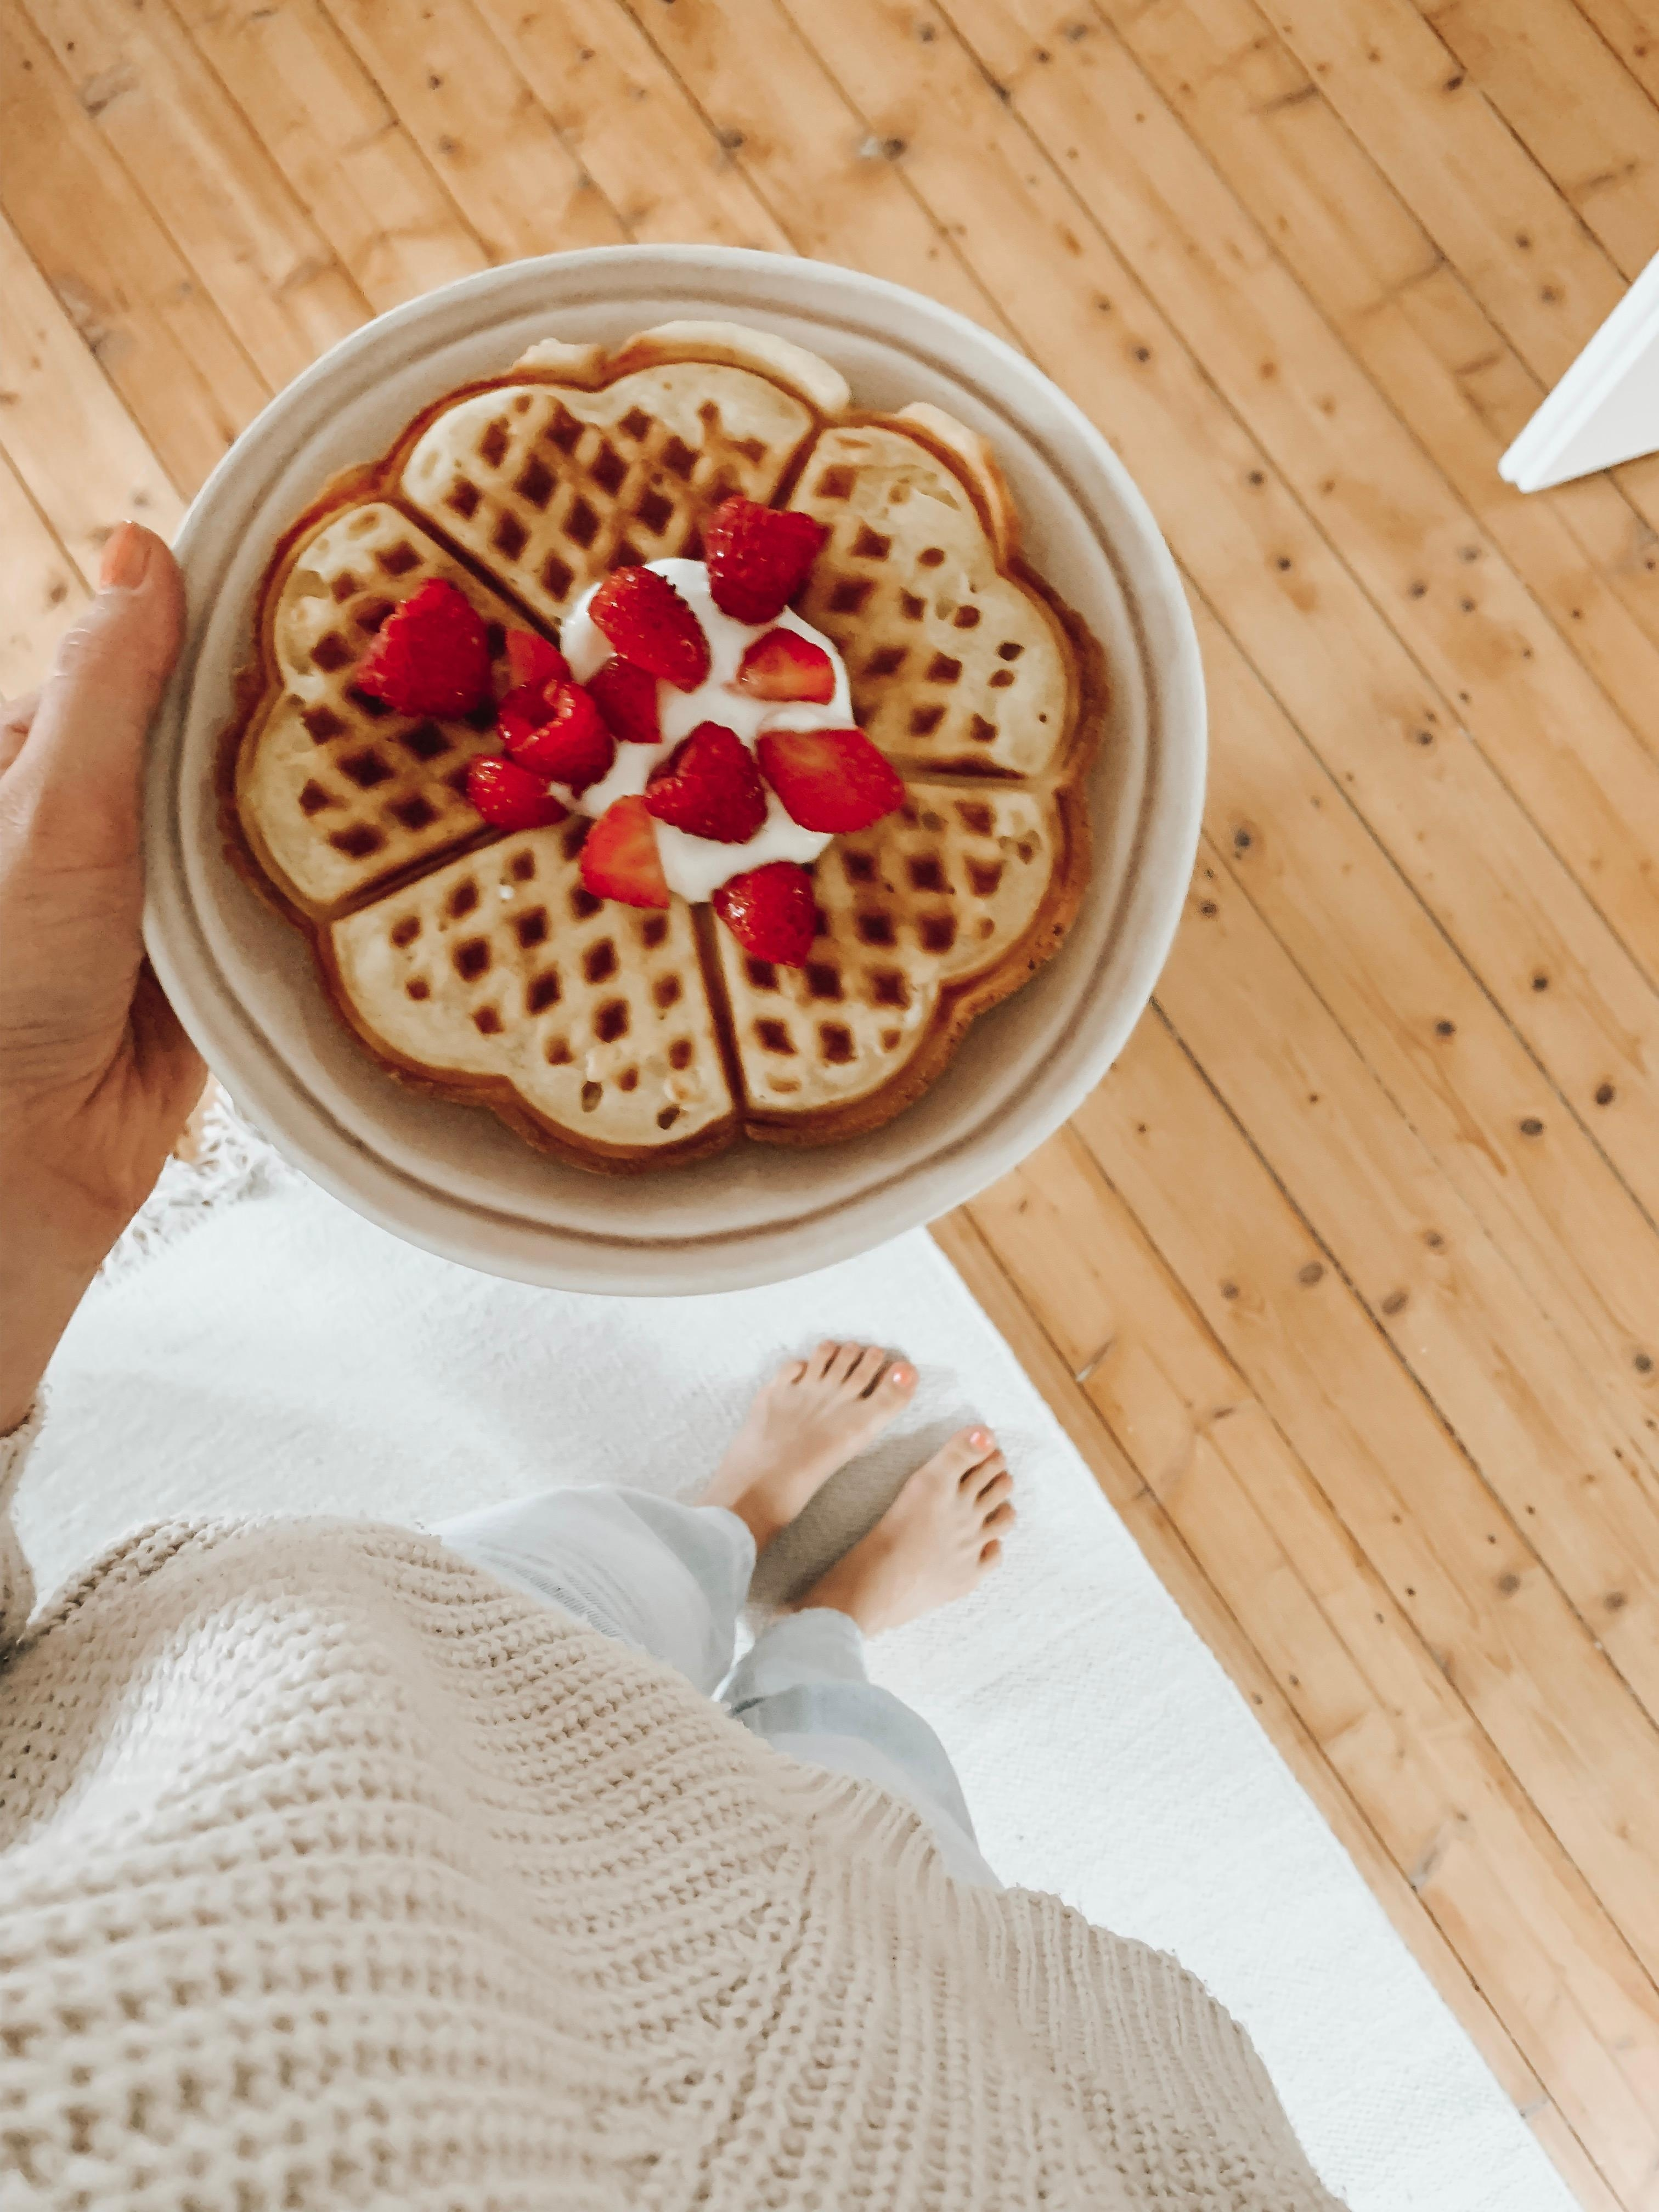 #couchliebt #waffeln #snacktime #nordicliving